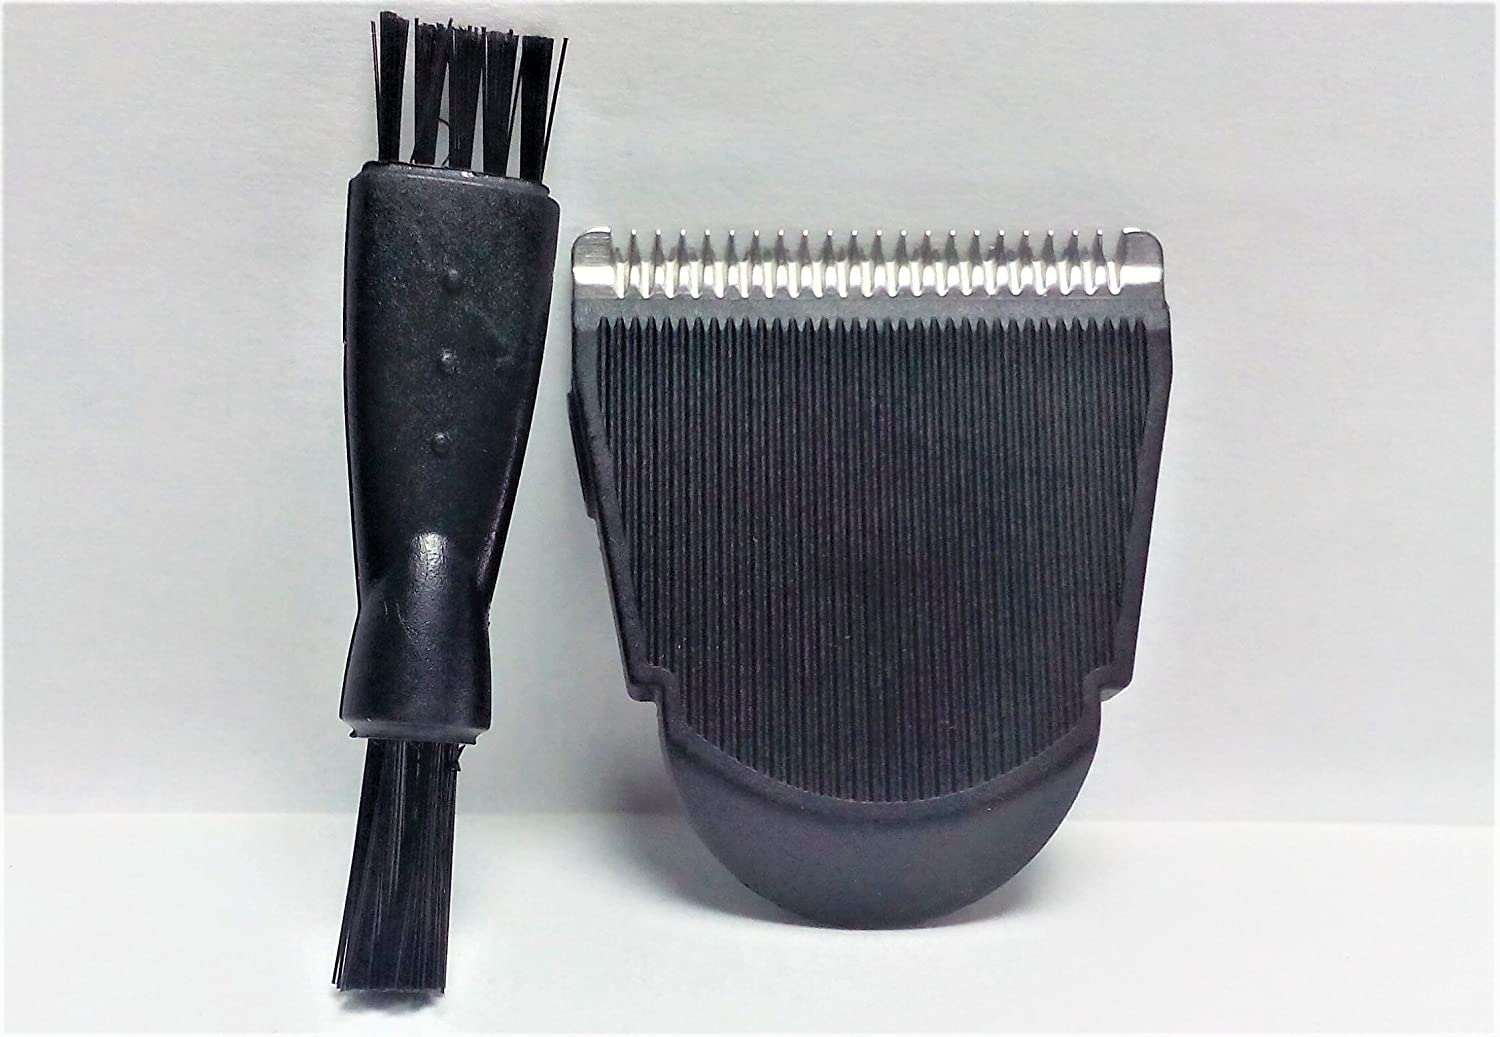 New HAIR CLIPPER COMB Blades For Philips QC5550 QC5530 QC5510 QC5570 QC5580 BEARD Trimmer clipper cutter hair shaver head blade Replacement Accessories Parts generic